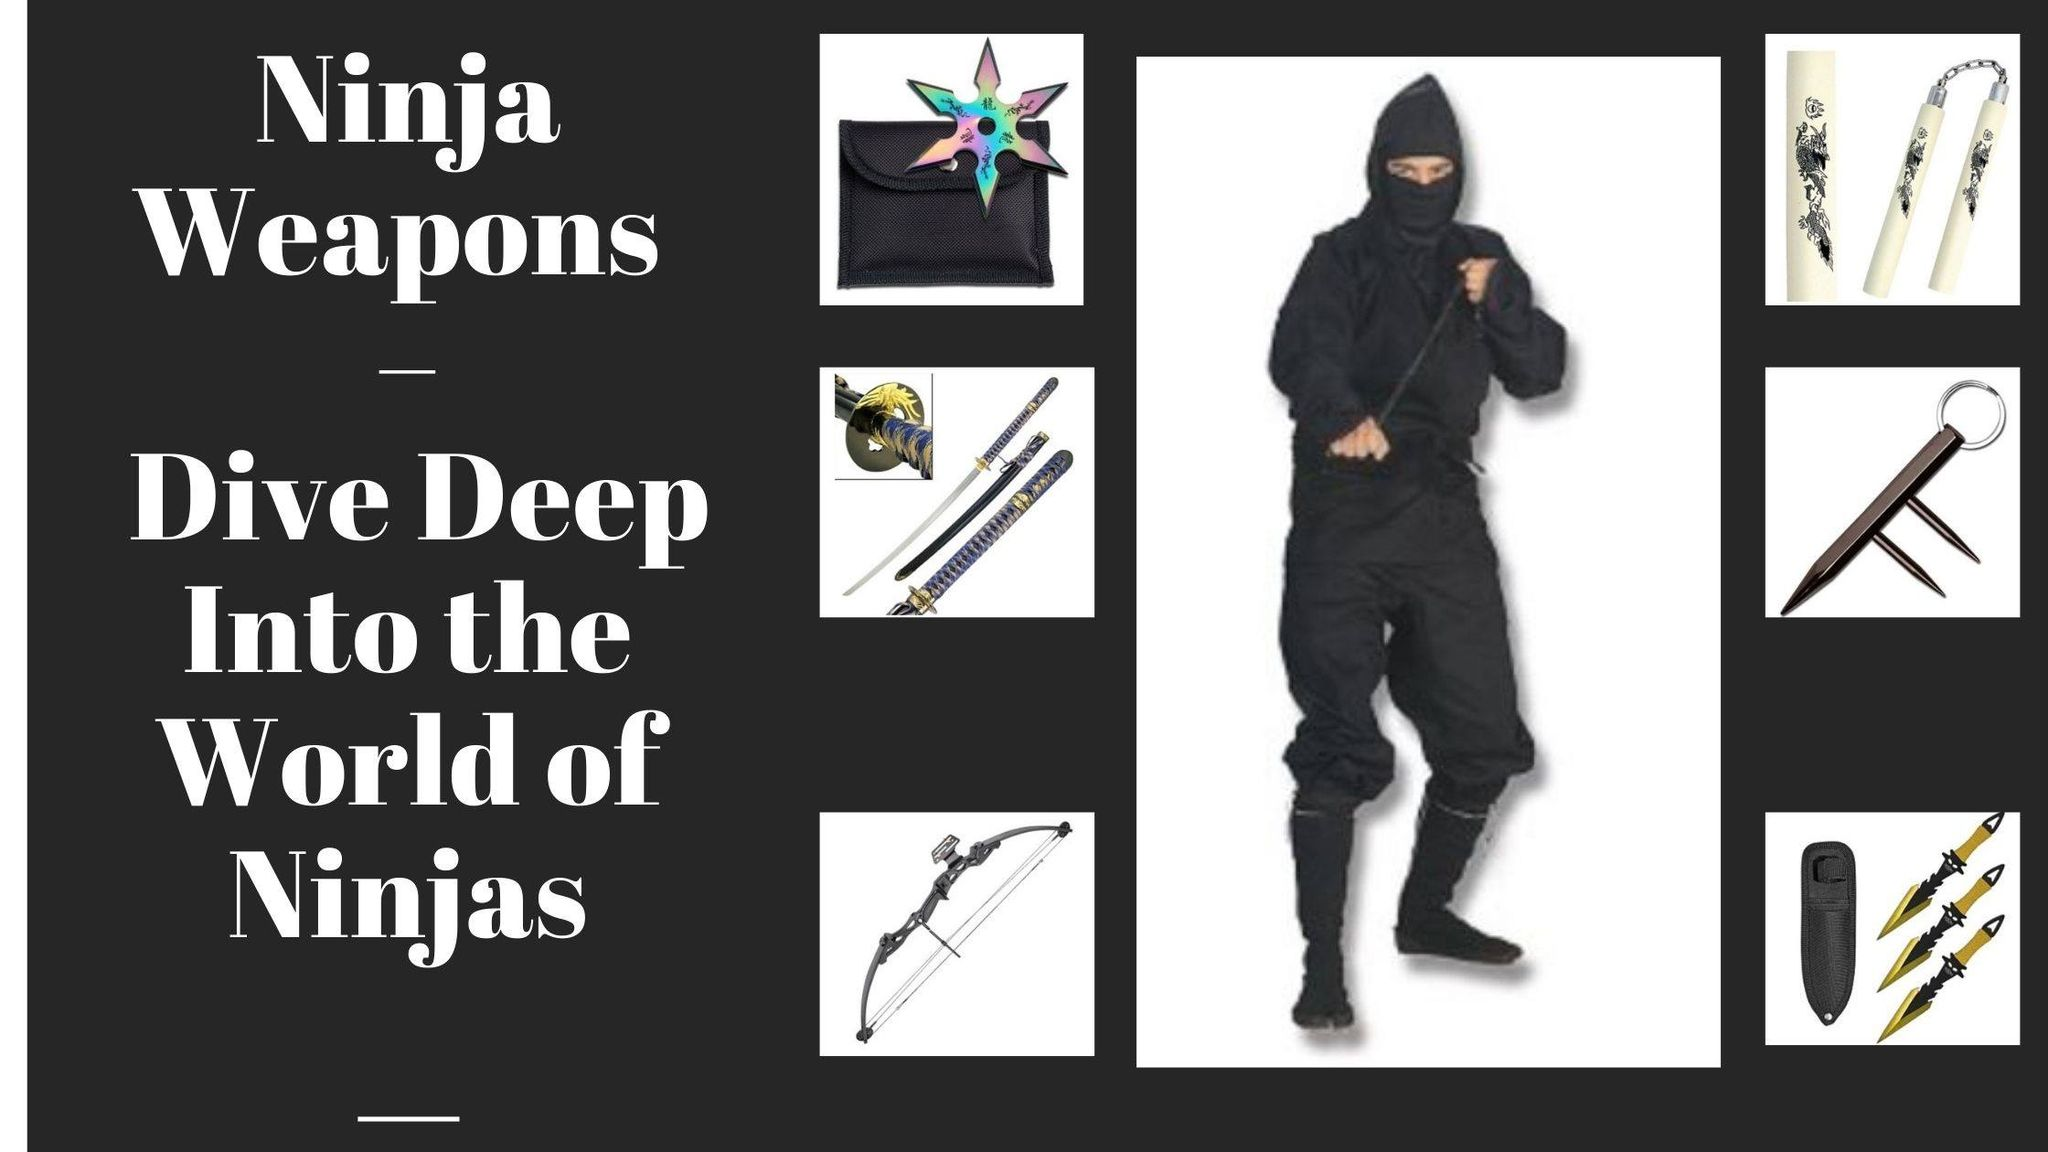 Ninja Weapons – Dive Deep Into the World of Ninjas